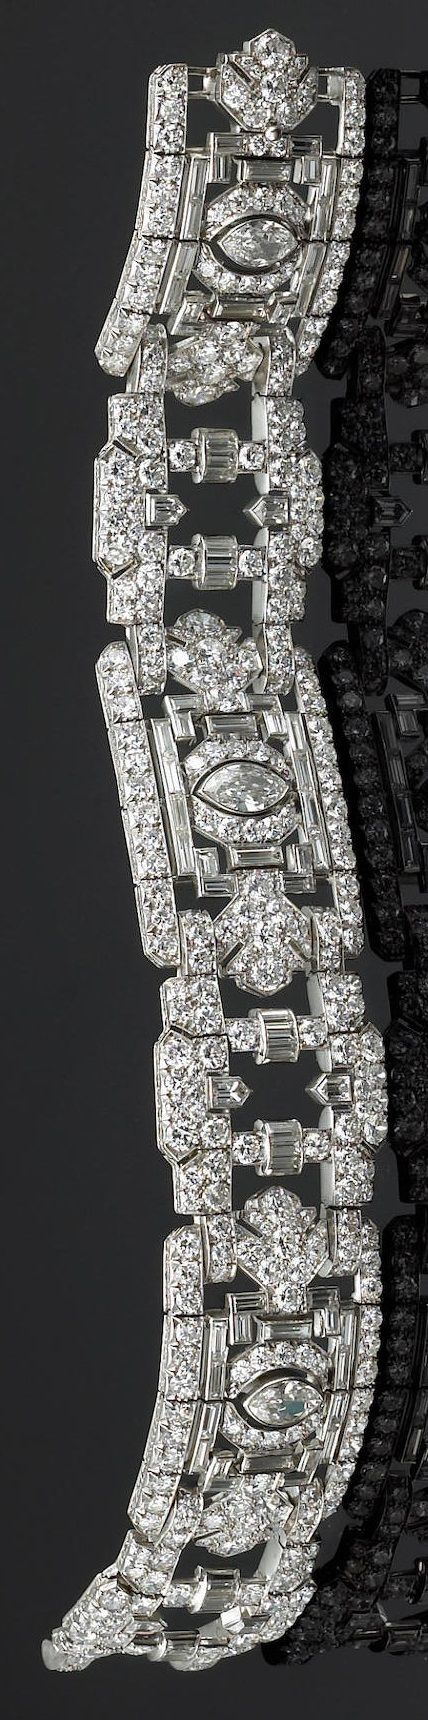 A late Art Deco diamond bracelet of flexible design, the three geometric panels each centring a marquise-cut diamond, surrounded by baguette and round brilliant-cut diamonds within an openwork frame, further enhanced by diamond set links of bullet-shaped diamonds and arched diamond spacers; estimated total diamond weight: 23.10 carats; mounted in platinum. #ArtDeco